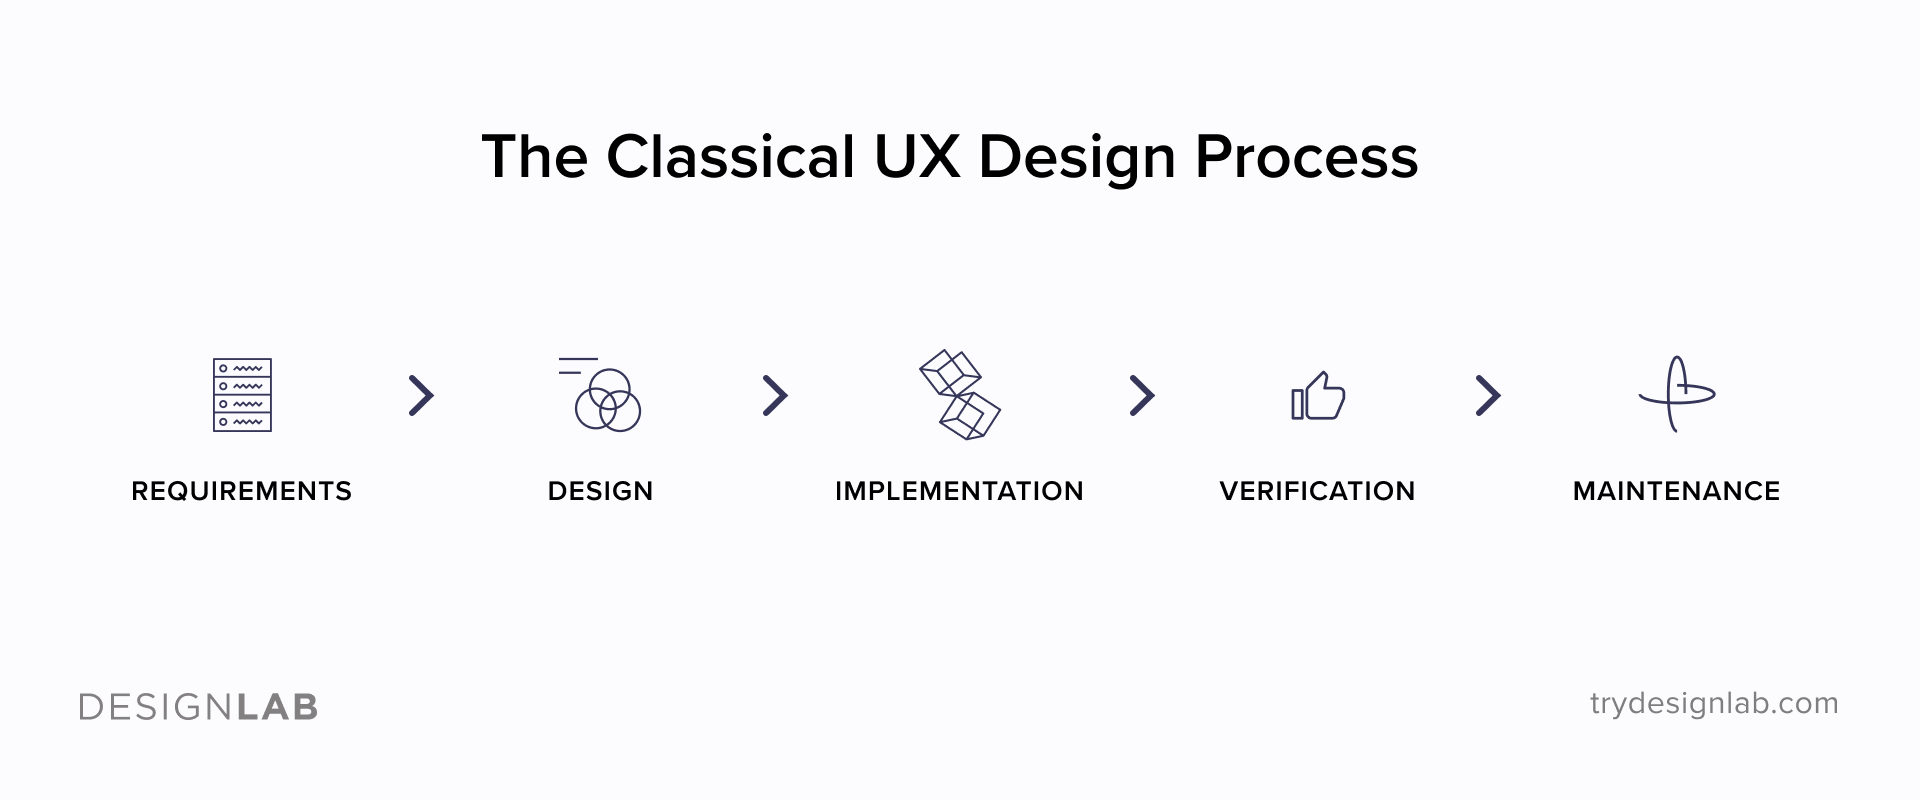 The Classical UX Design Process